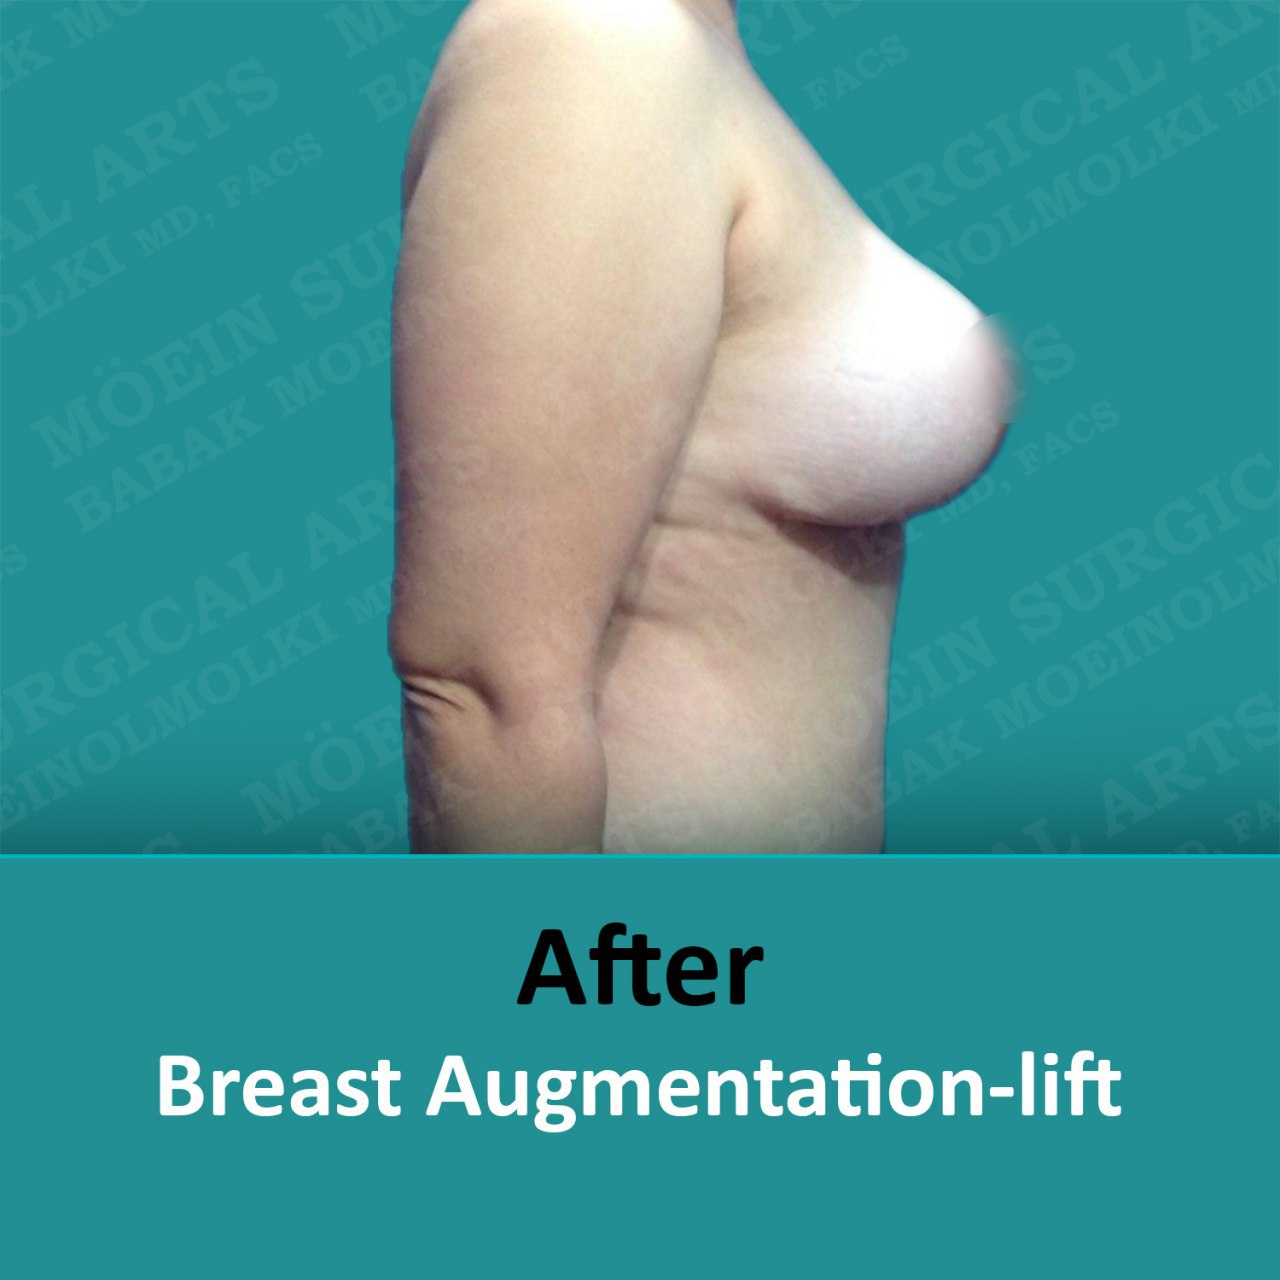 breast lift and augmentation surgery recovery after